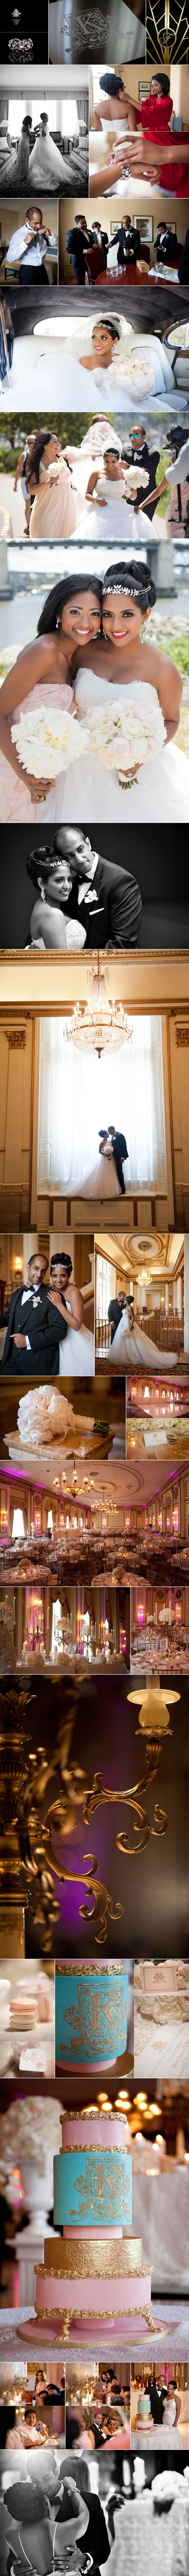 Fairmont Hotel Vancouver - Jasalyn Thorne Photography - Wedding